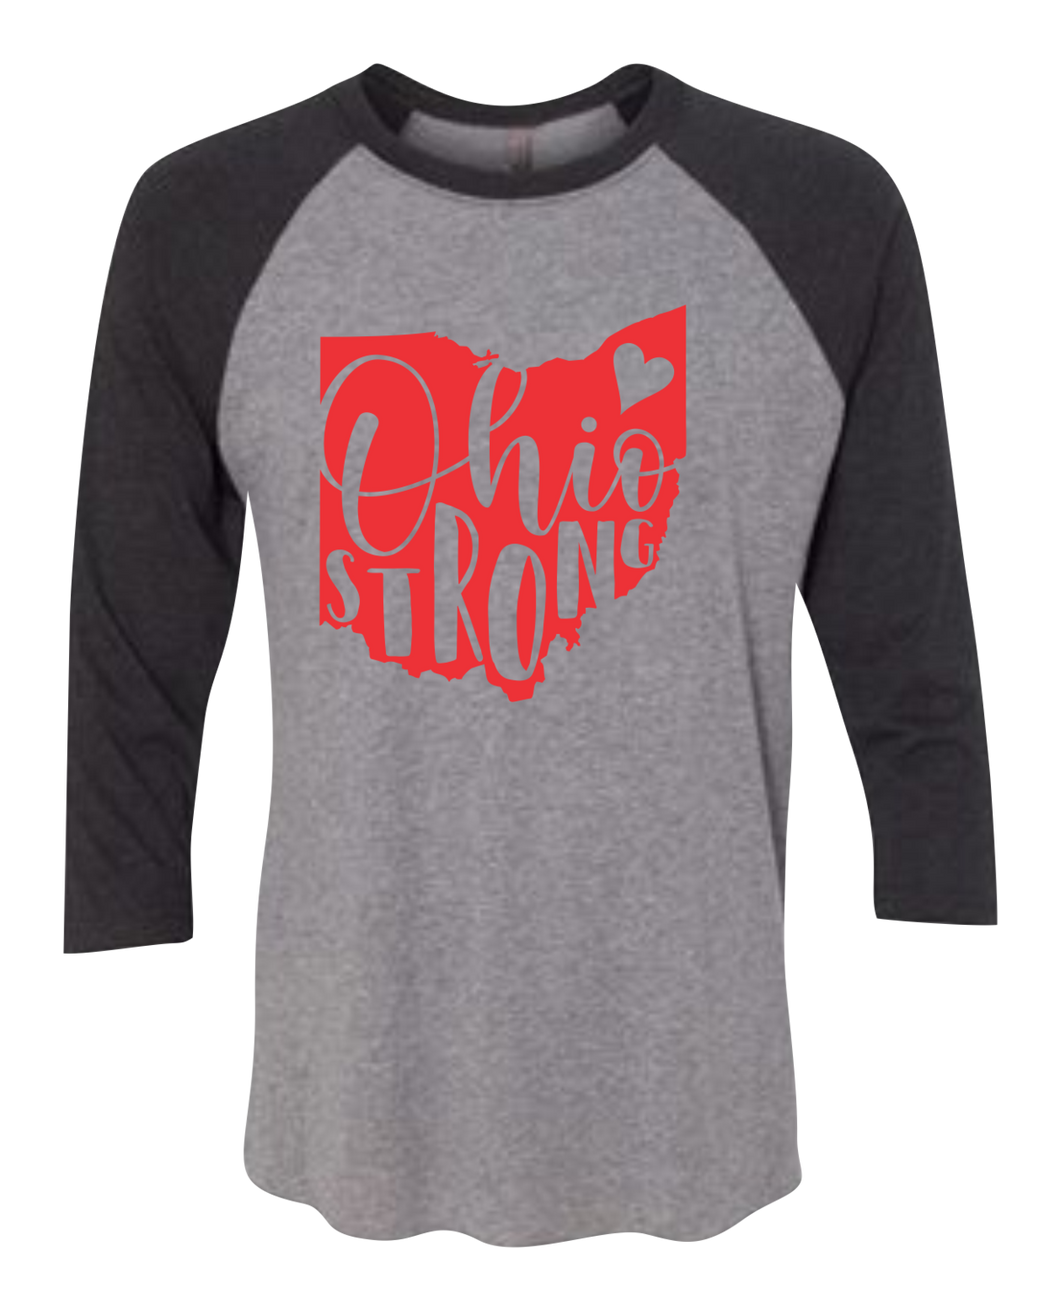 Ohio Strong Raglan 3/4 Sleeve Graphic Shirt